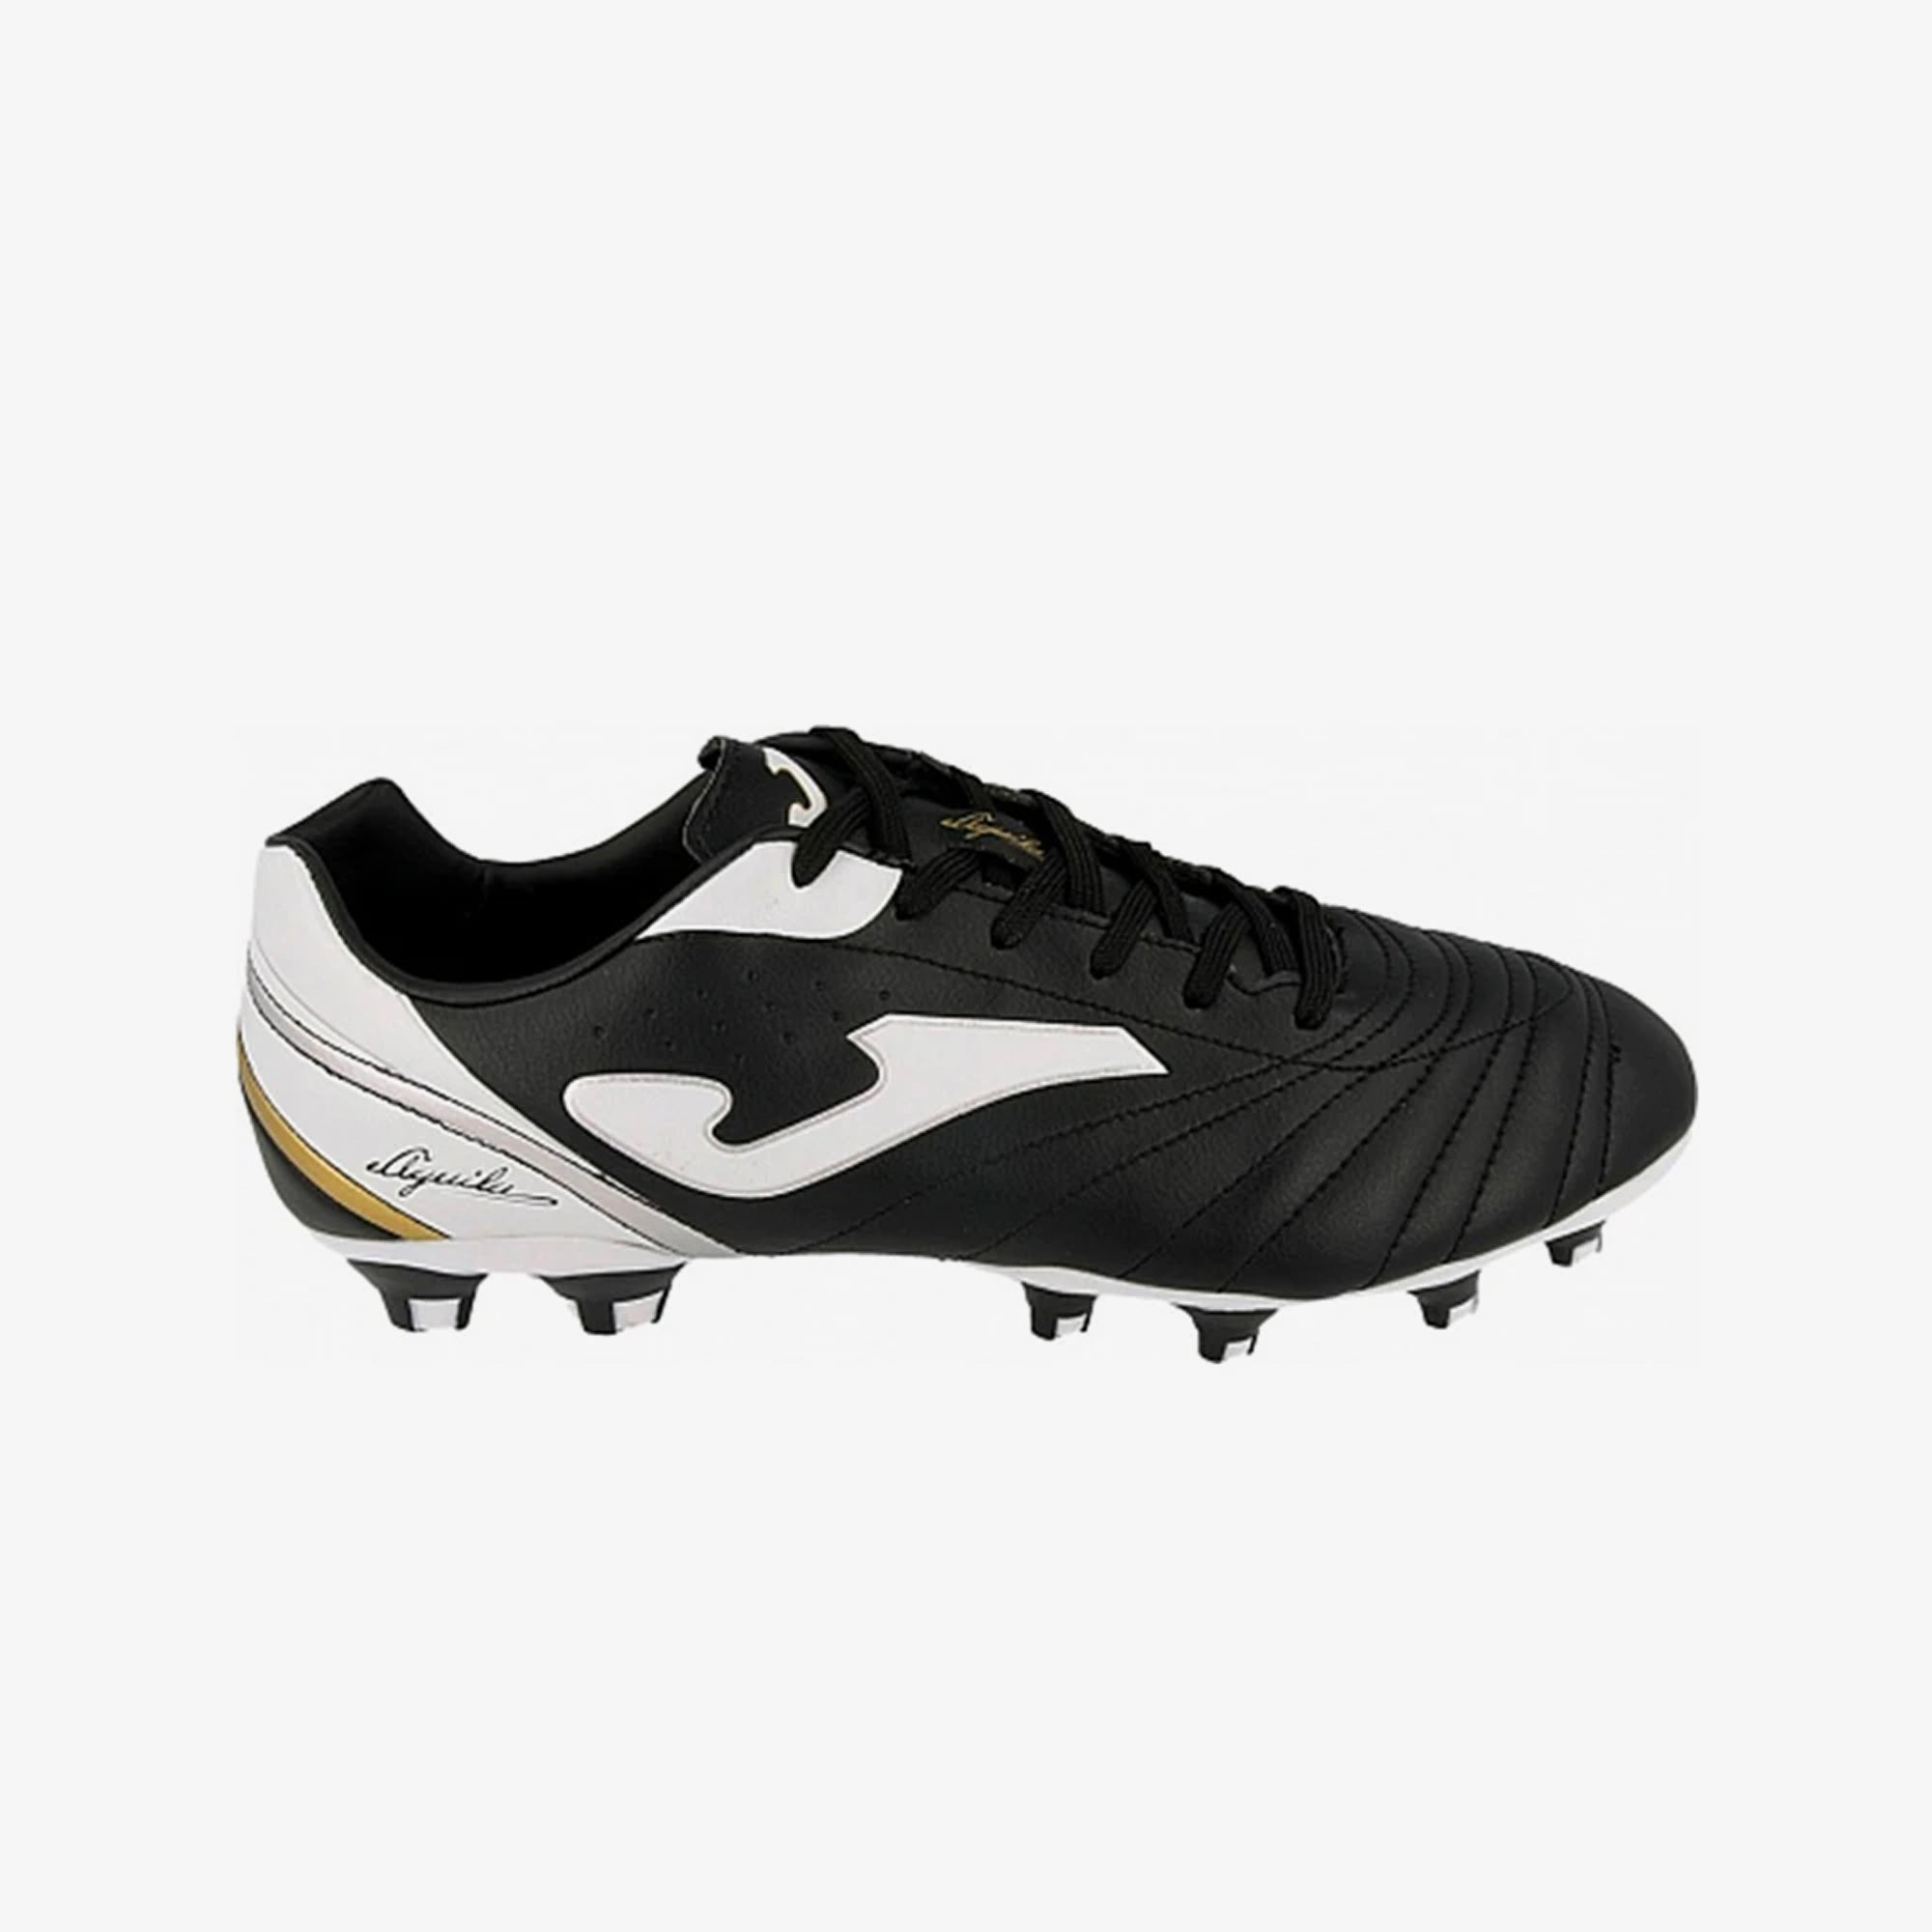 Aguila Gol 601 Firmground Soccer Shoes